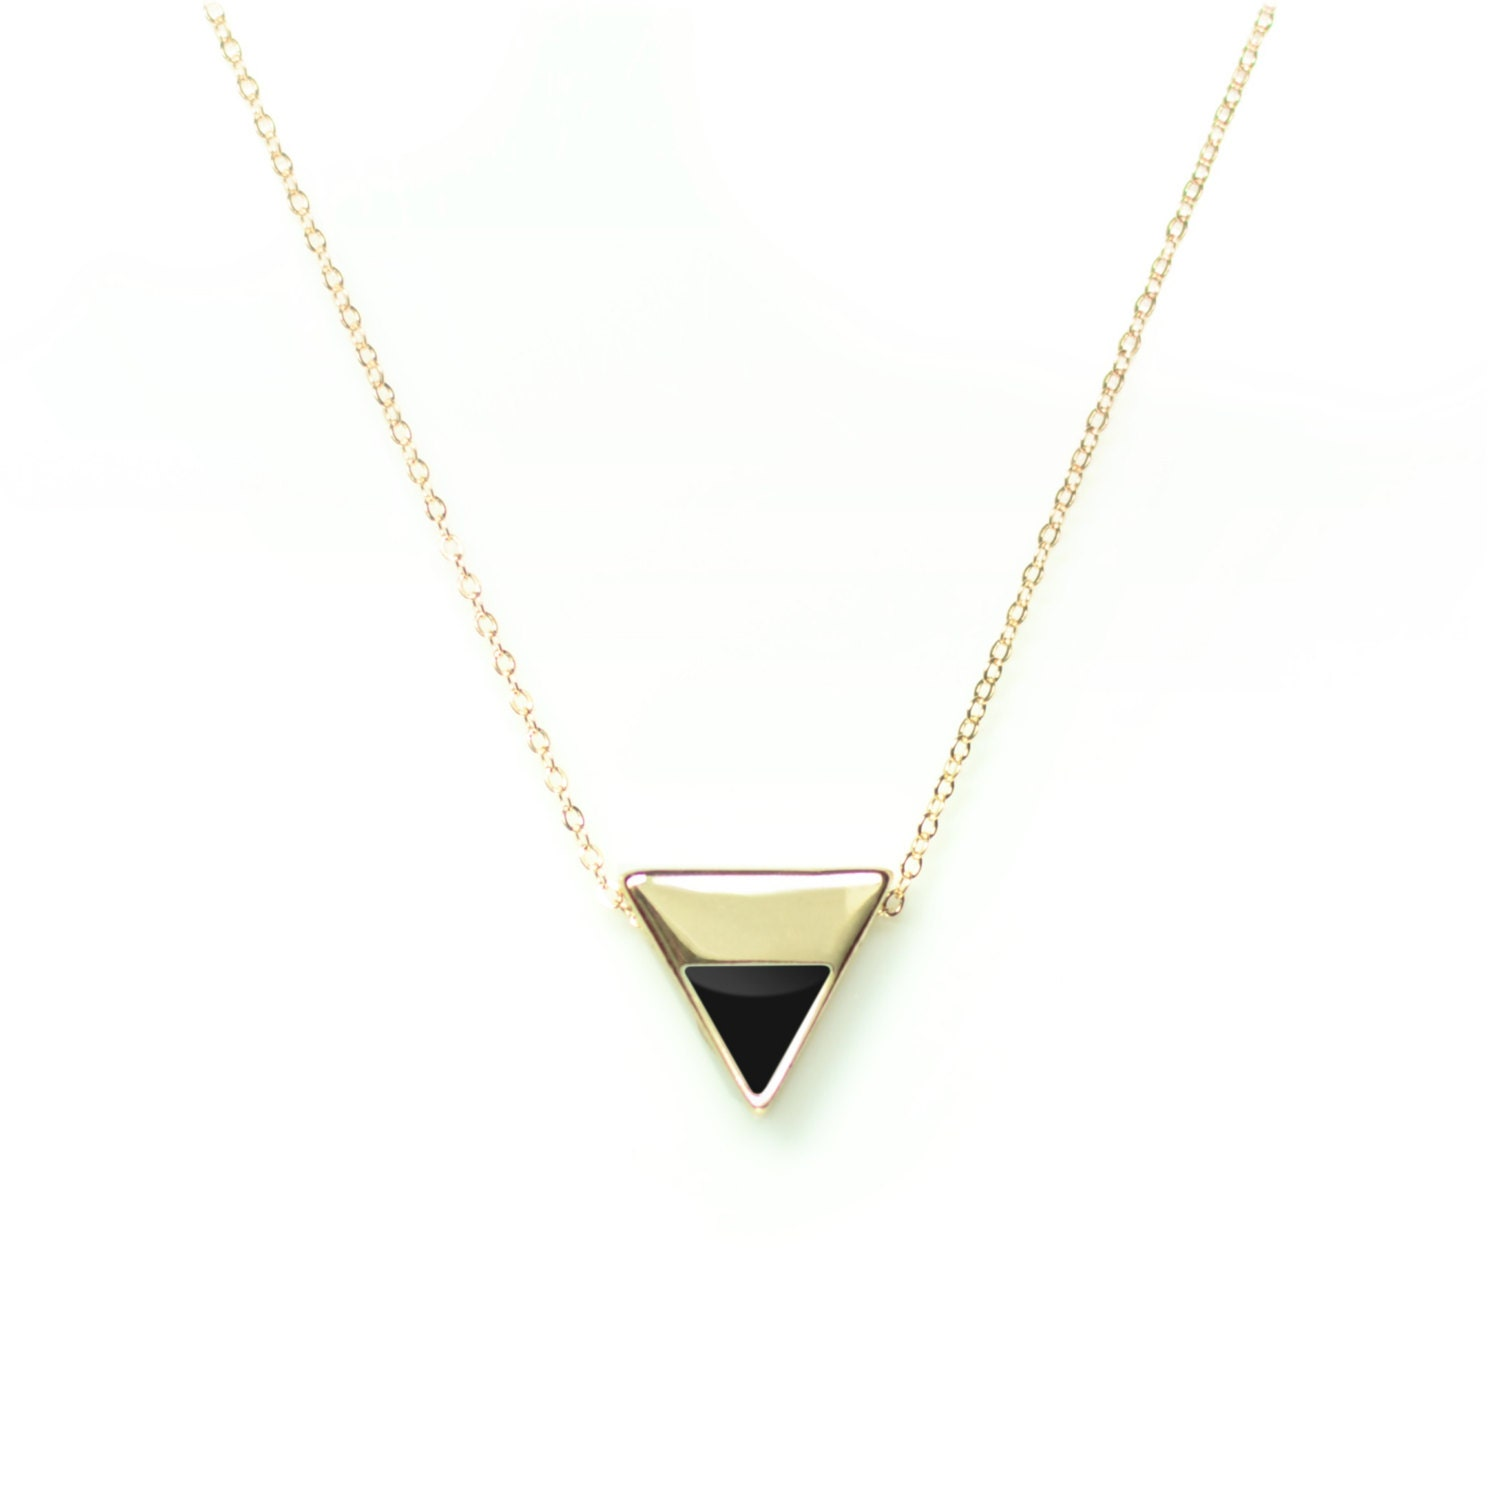 Triangle necklace geometric necklace simple gold necklace zoom aloadofball Images